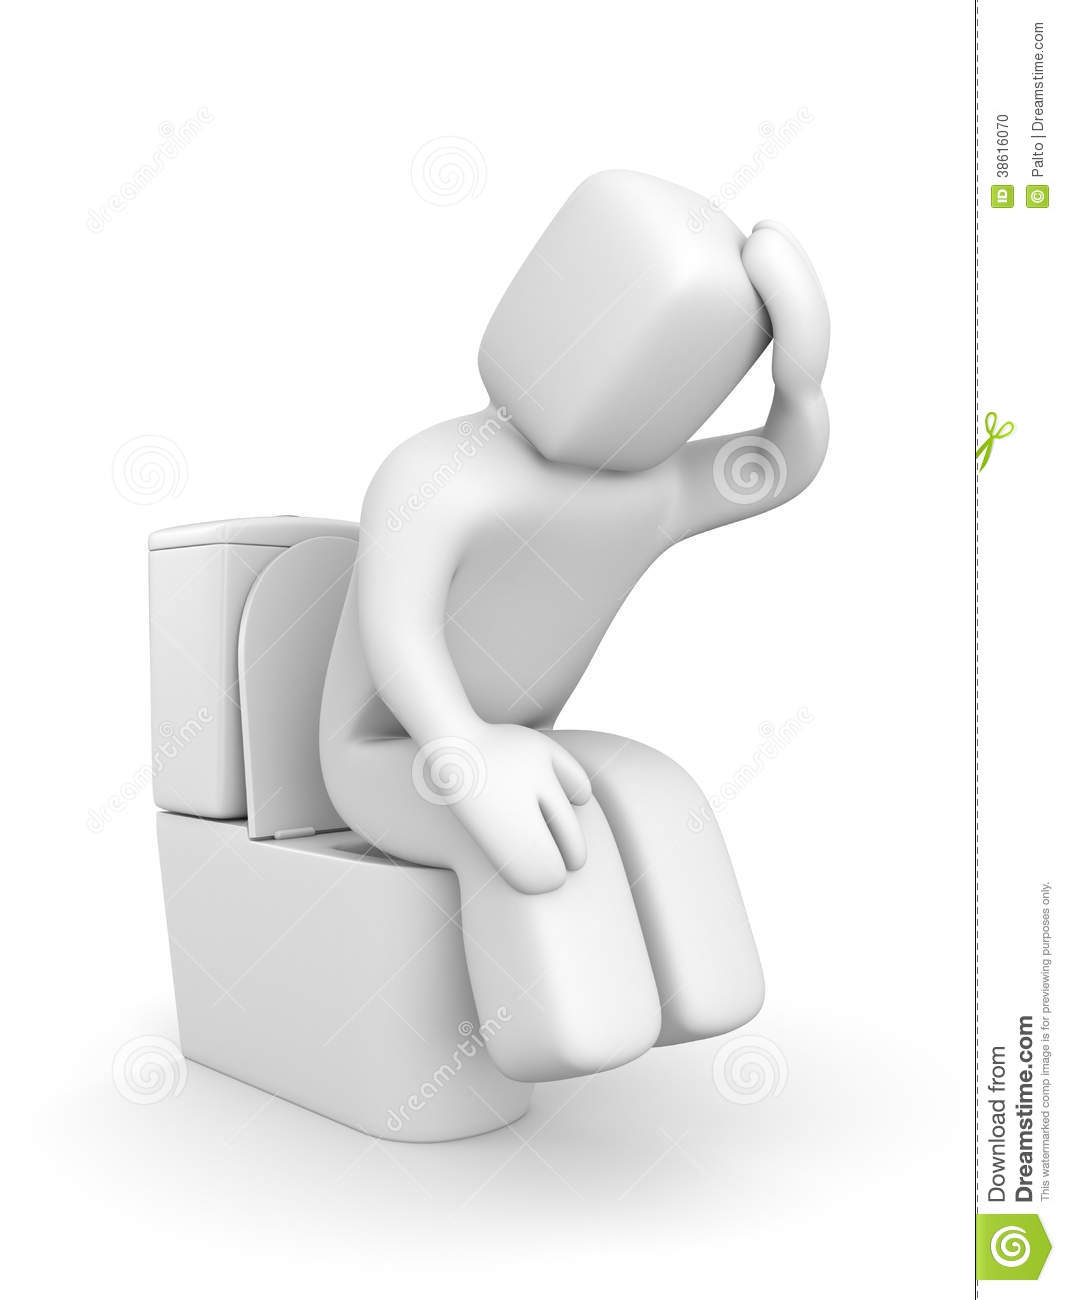 Person Is Sitting On The Toilet Bowl Stock Photo - Image ...